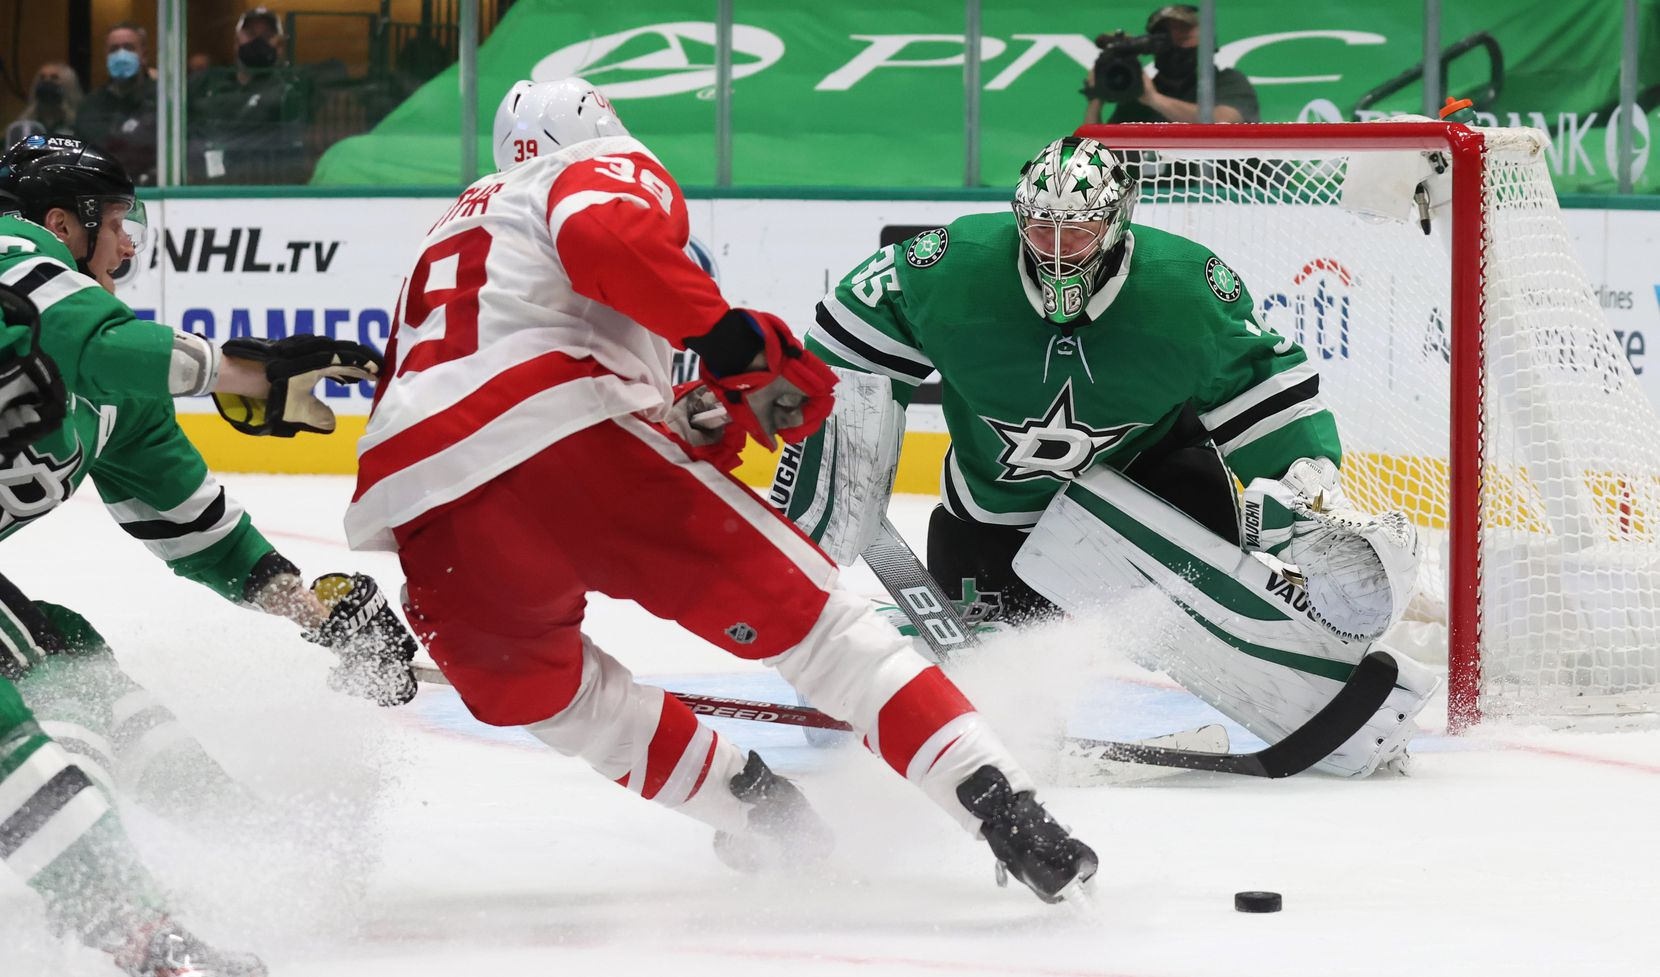 Dallas Stars goaltender Anton Khudobin (35) defends the goal as Detroit Red Wings right wing Anthony Mantha (39) advances during the overtime at American Airlines Center on Tuesday, January 26, 2021in Dallas. Dallas Stars defeated the Detroit Red Wings 2-1 in overtime. (Vernon Bryant/The Dallas Morning News)